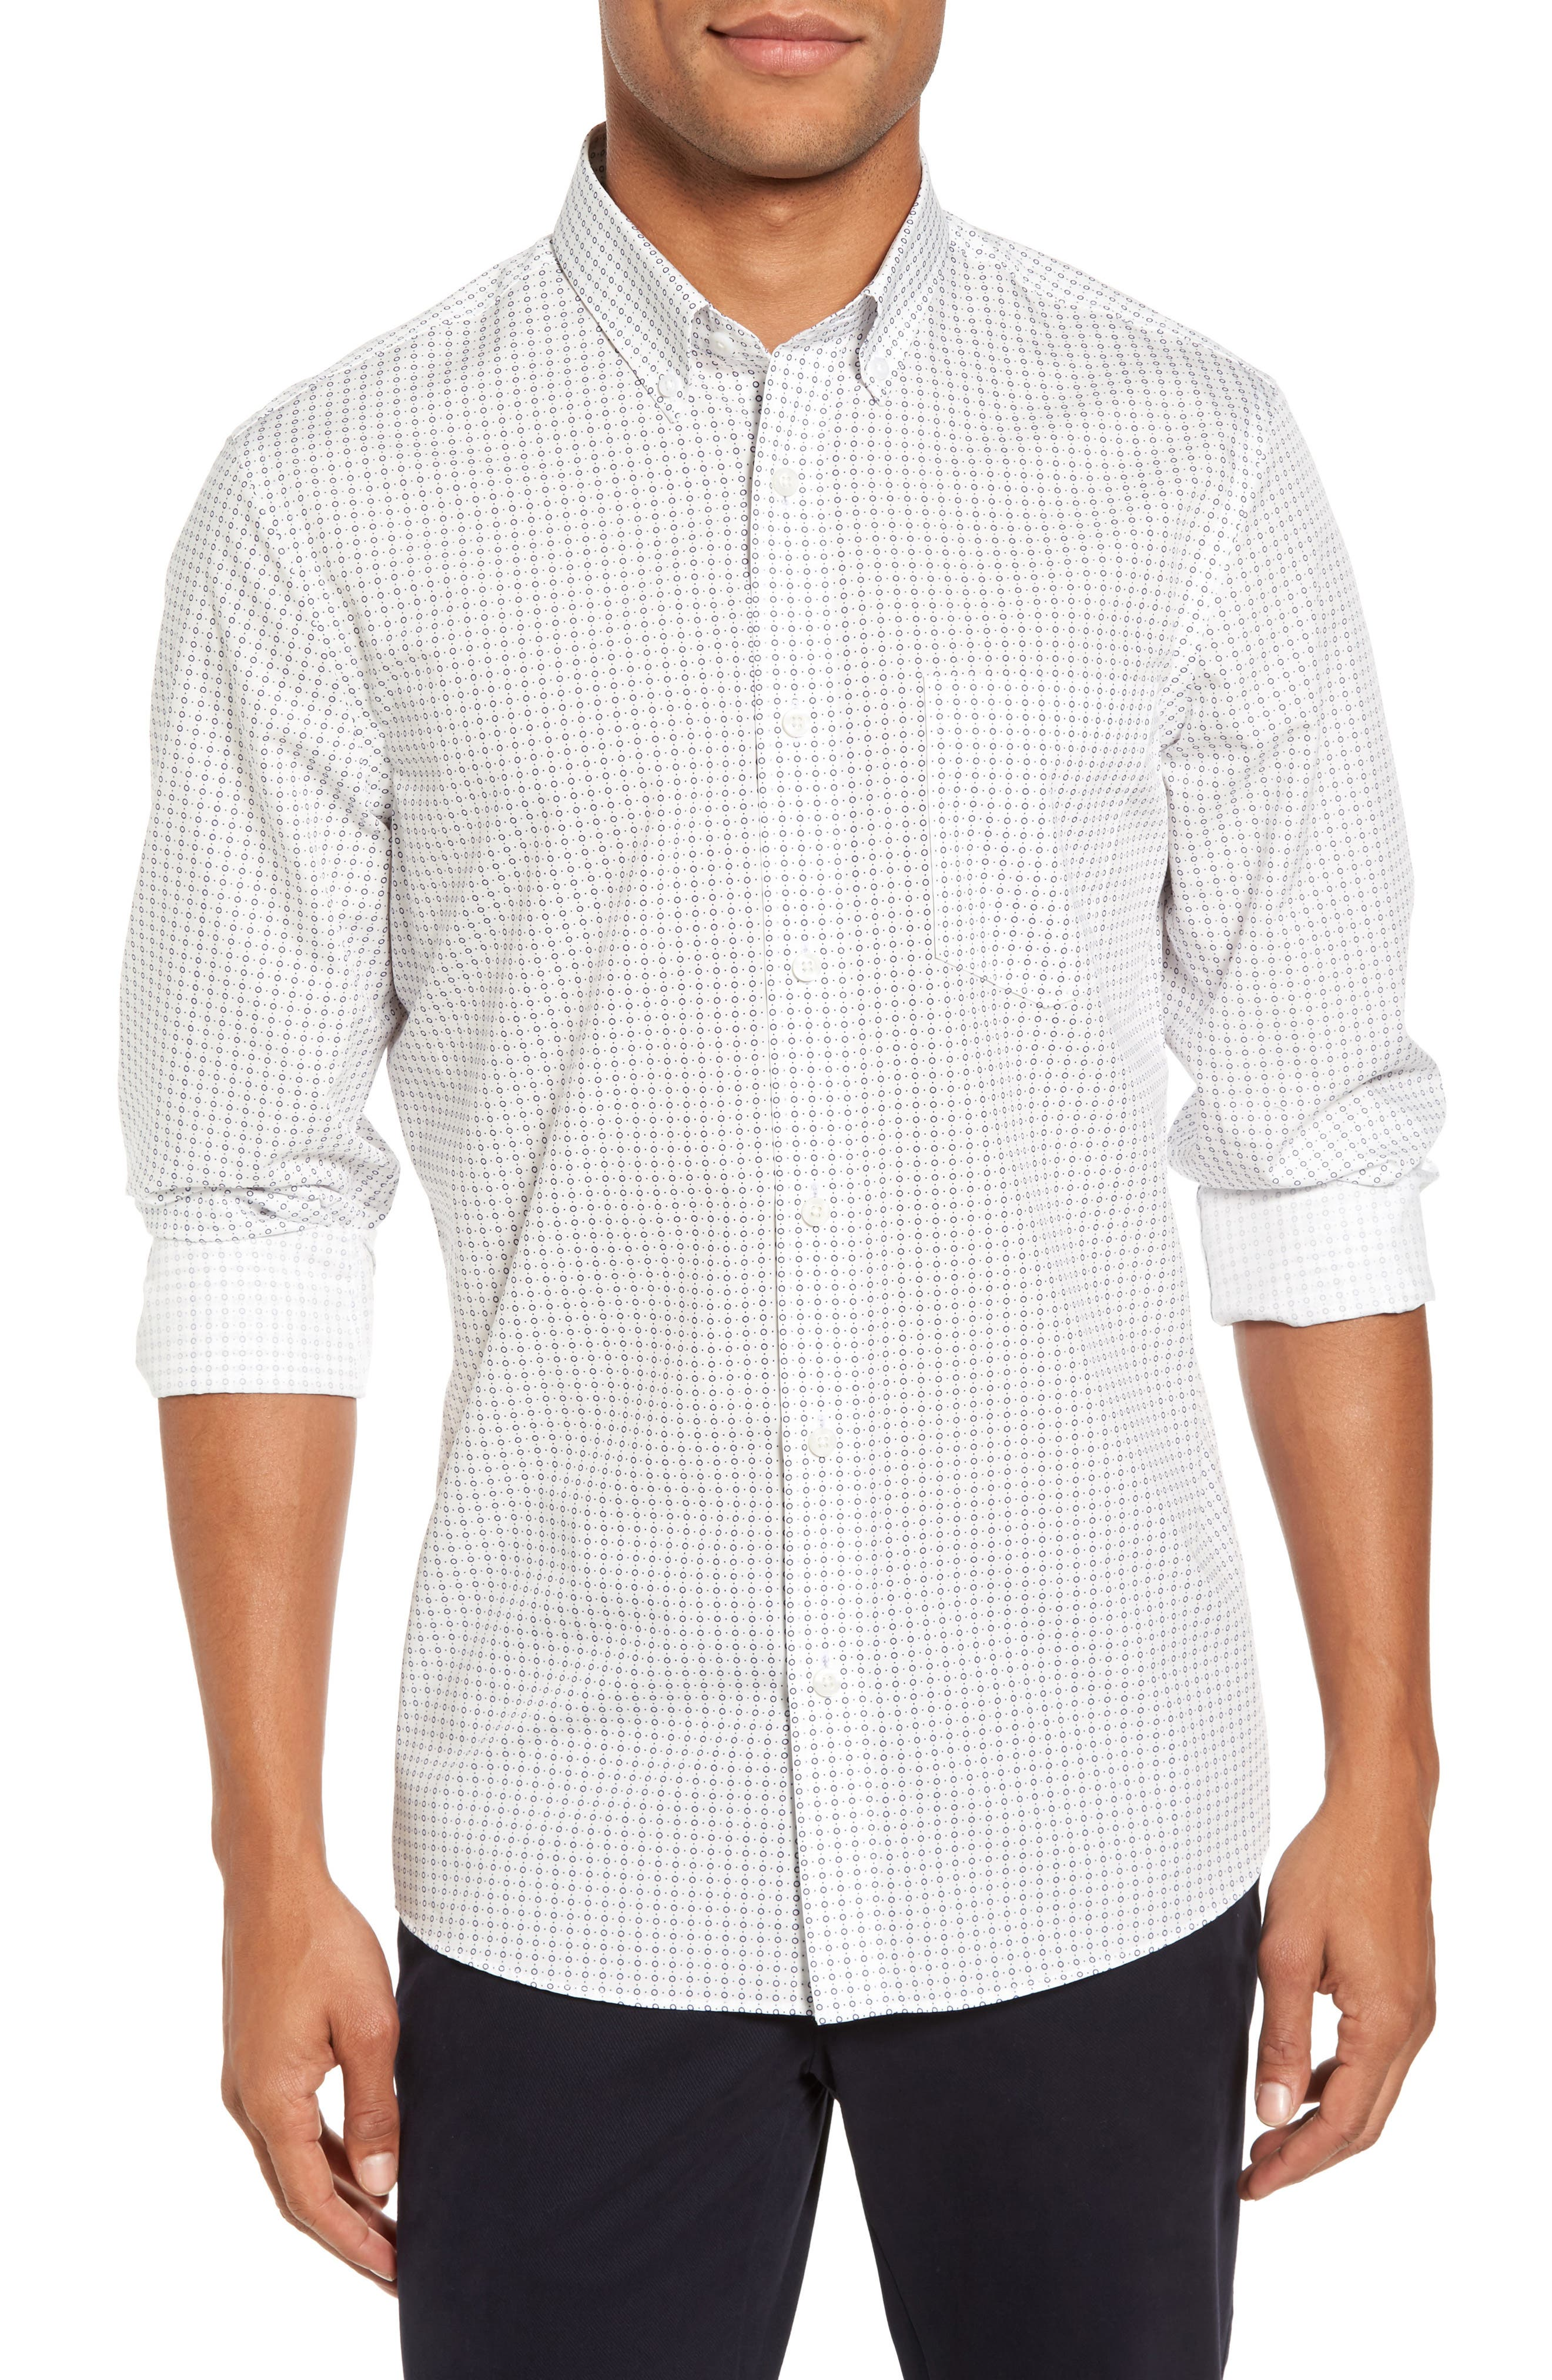 Alternate Image 1 Selected - Nordstrom Men's Shop Trim Fit Non-Iron Circle Print Sport Shirt